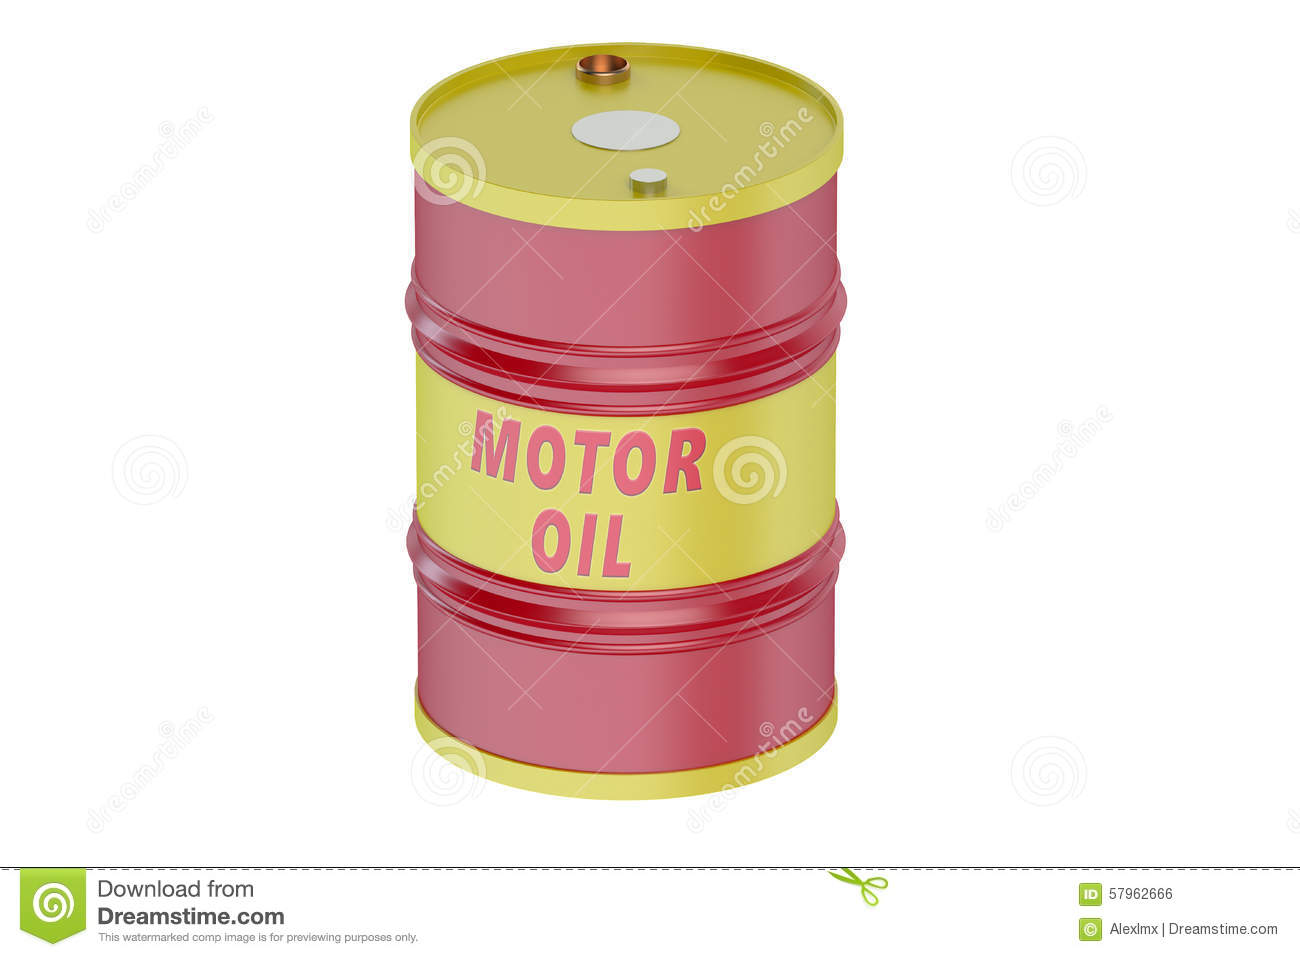 Motor oil barrel